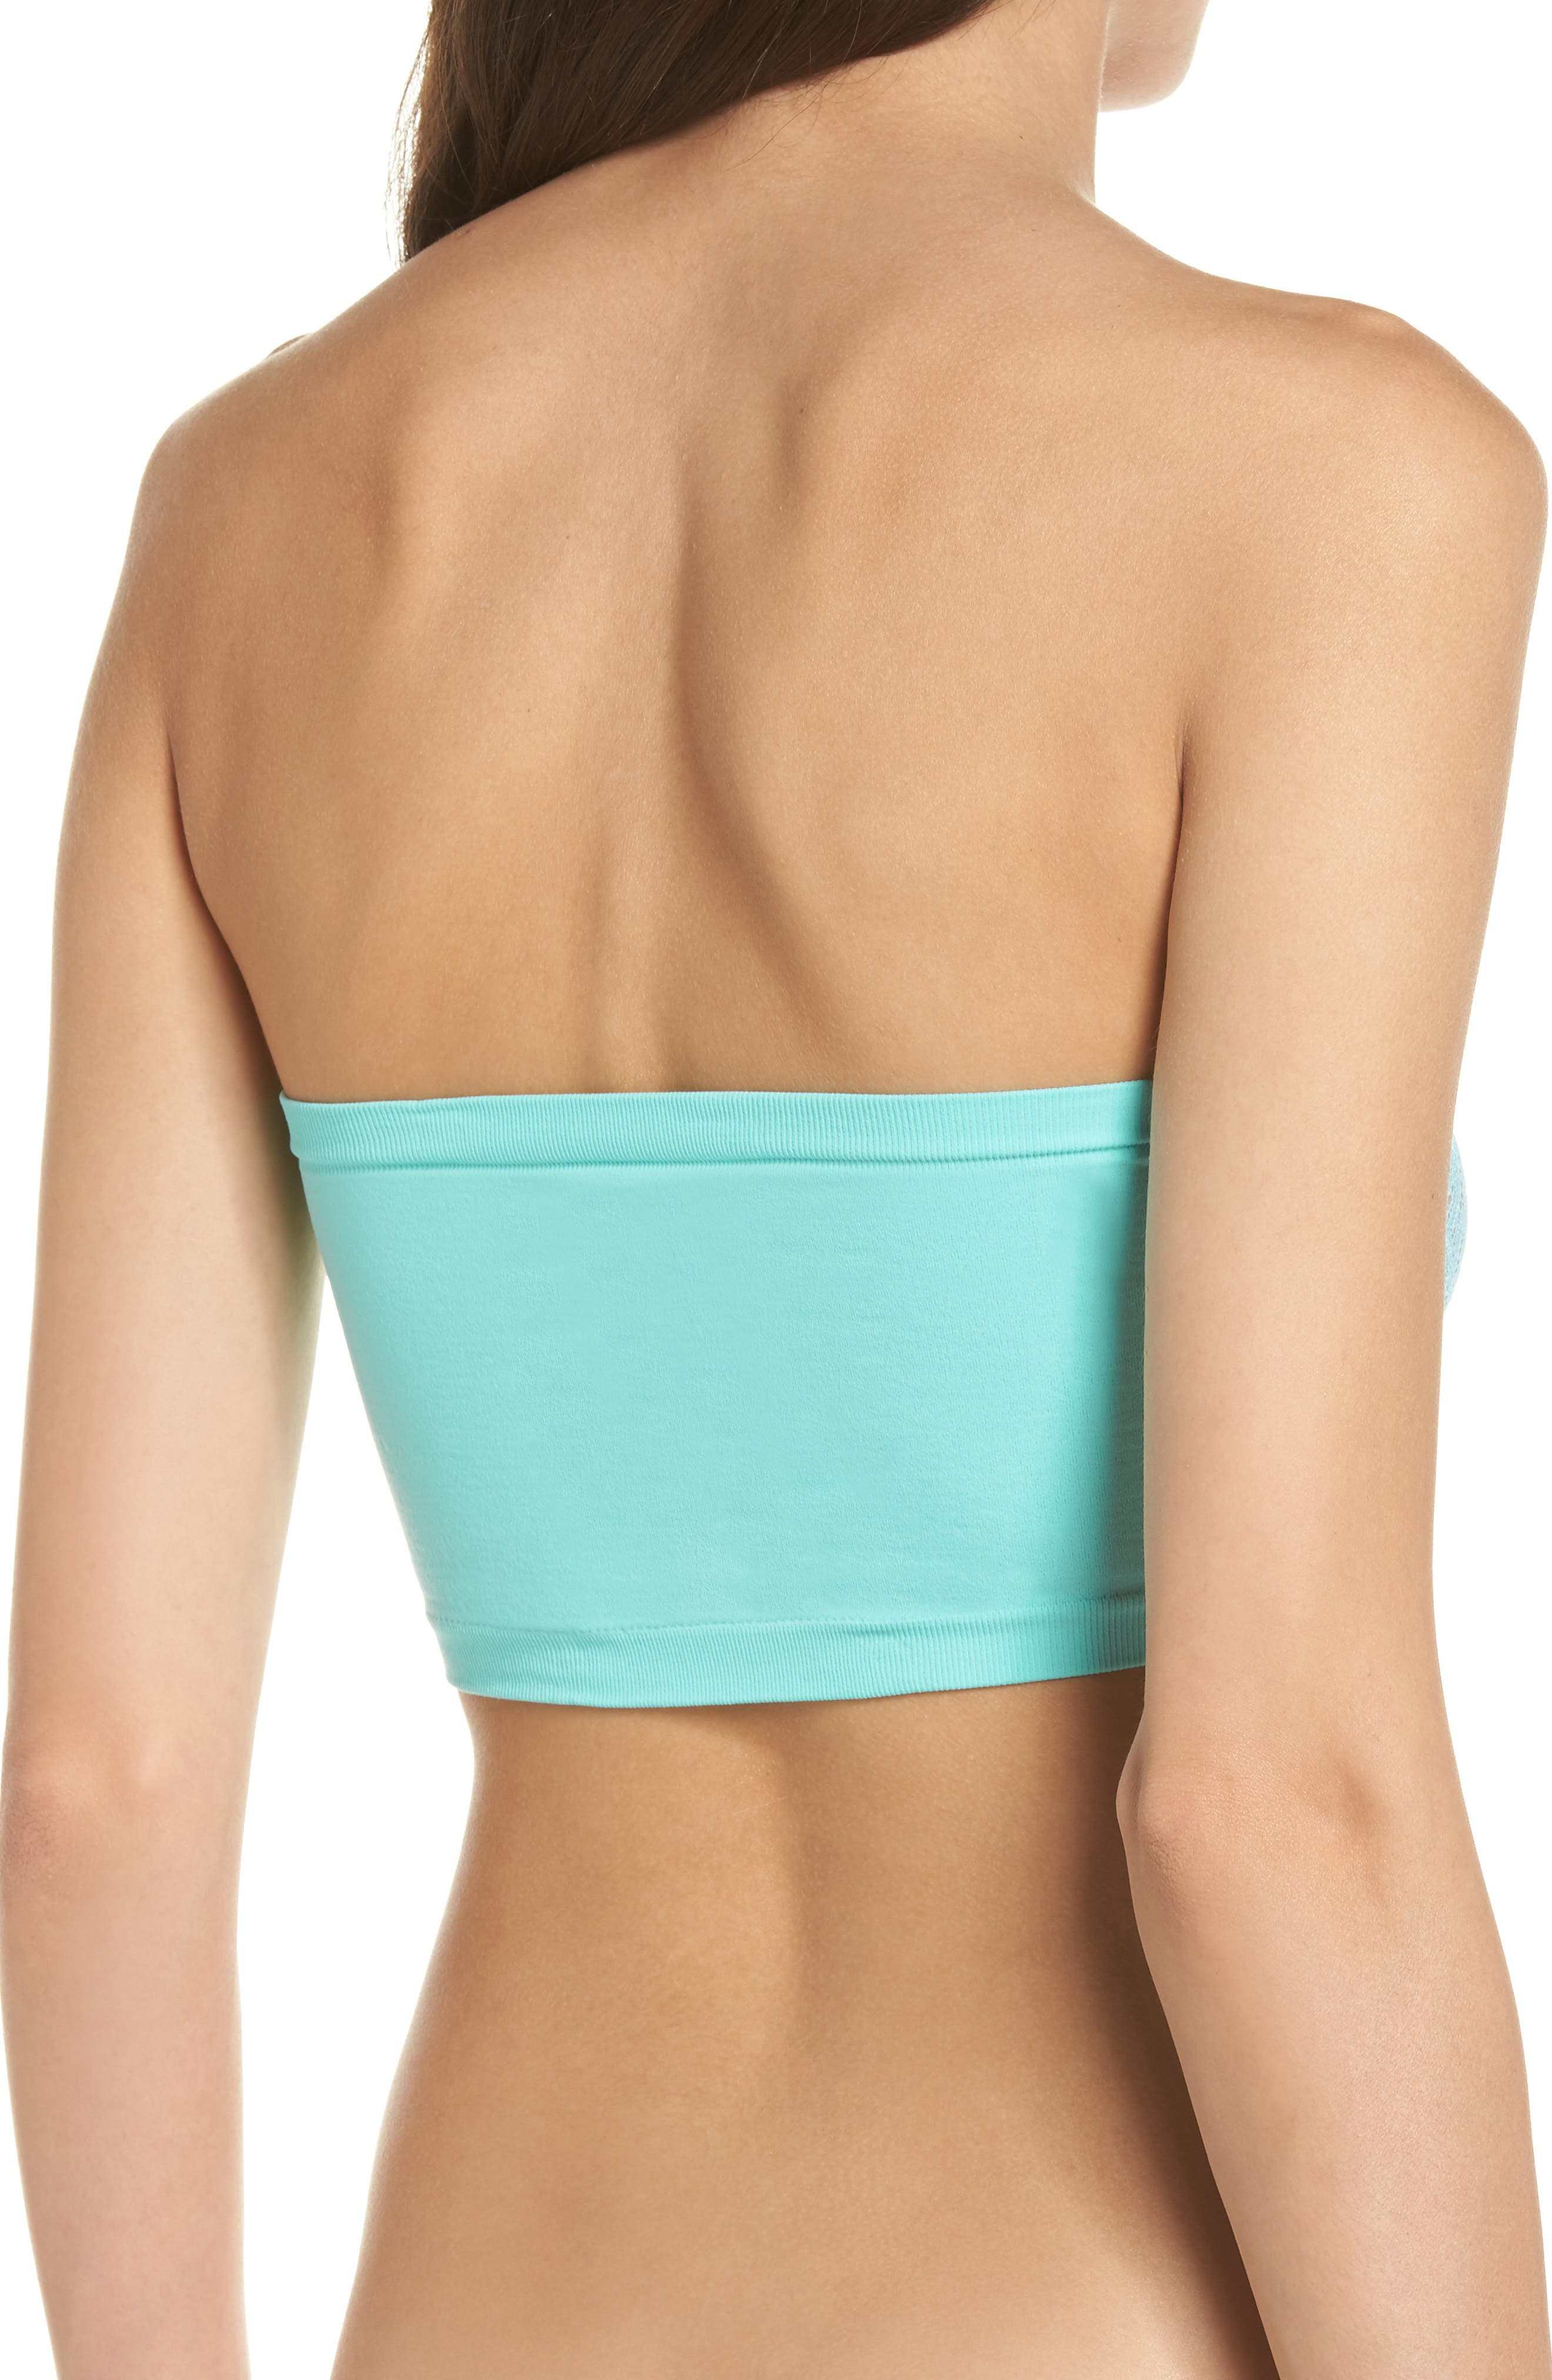 Intimately FP Lace Reversible Seamless Bandeau,                             Alternate thumbnail 16, color,